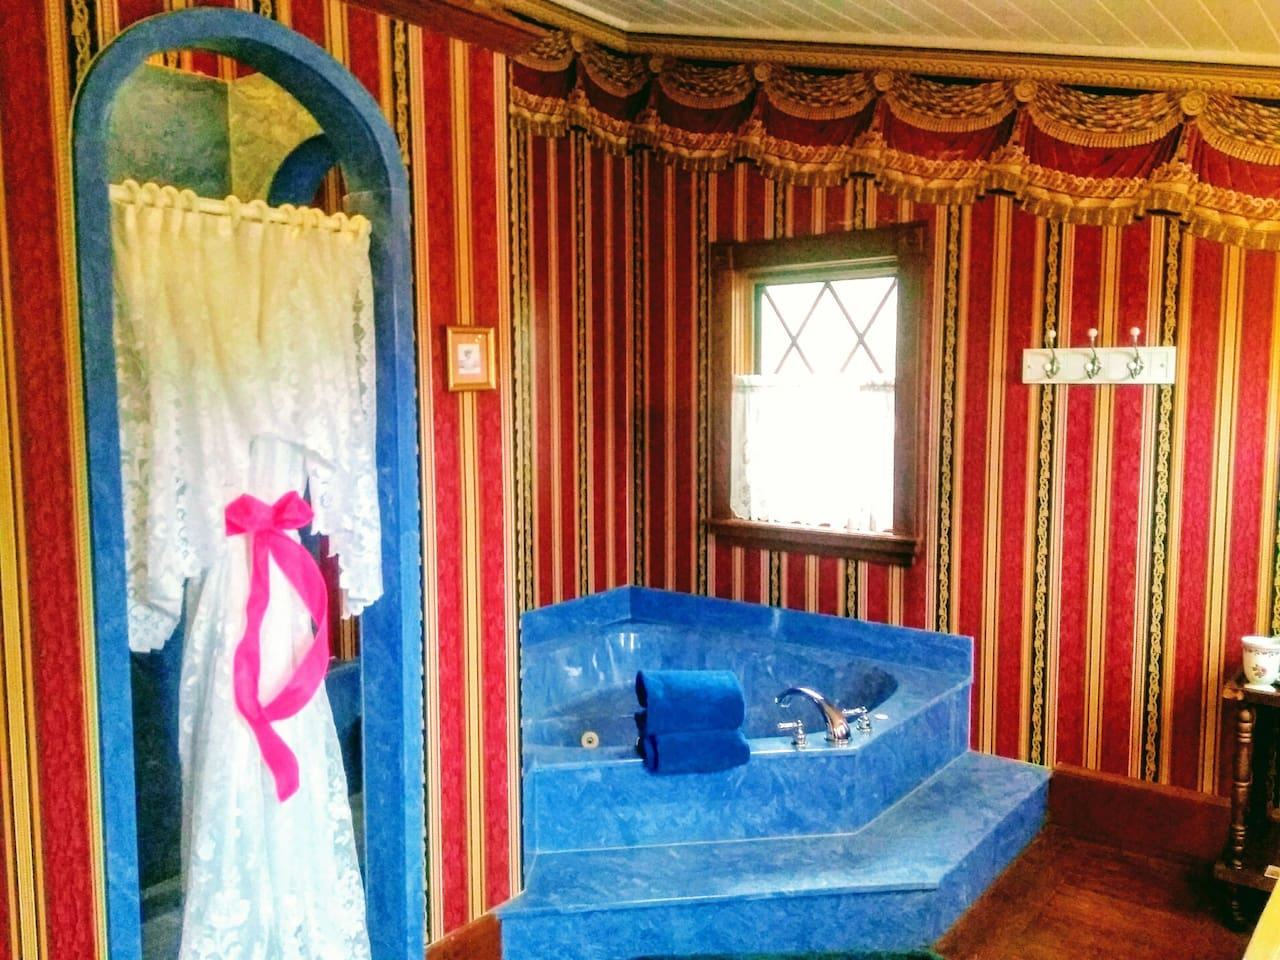 Second floor whirlpool suite in historic section of building.  Original heartpine floors, fire mantel and tall ceilings. Queen four poster bed, remote controlled electric fireplace with flame color features.